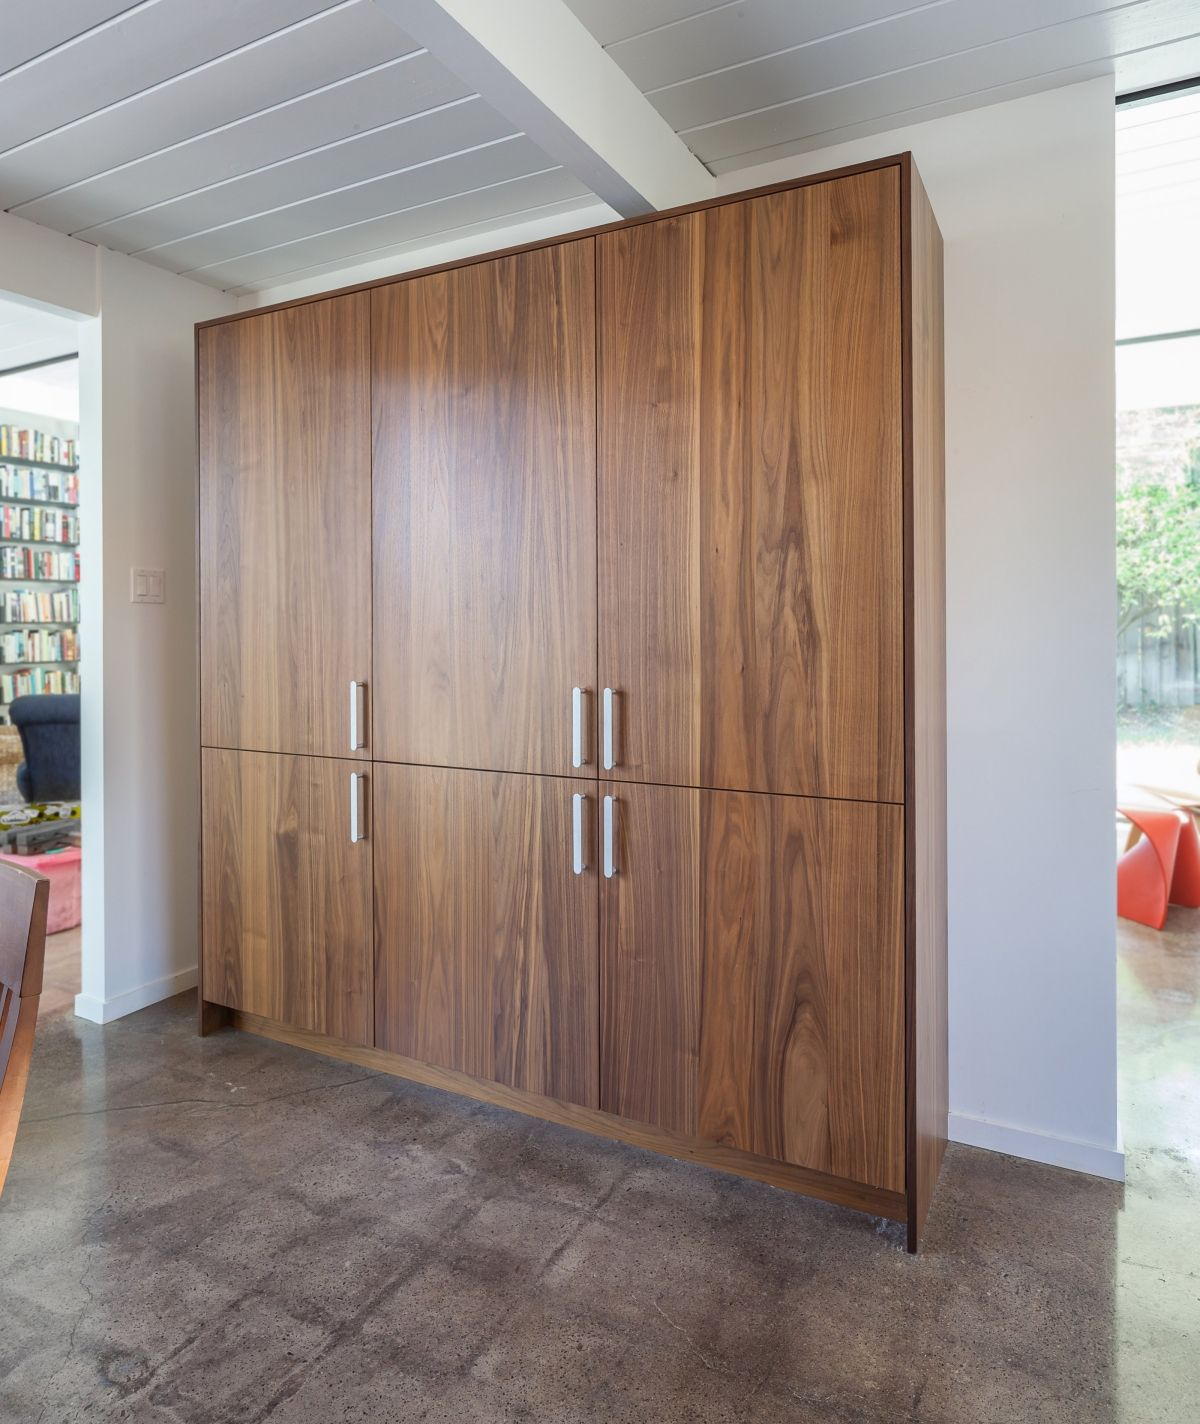 Clutter Control with Cabinets